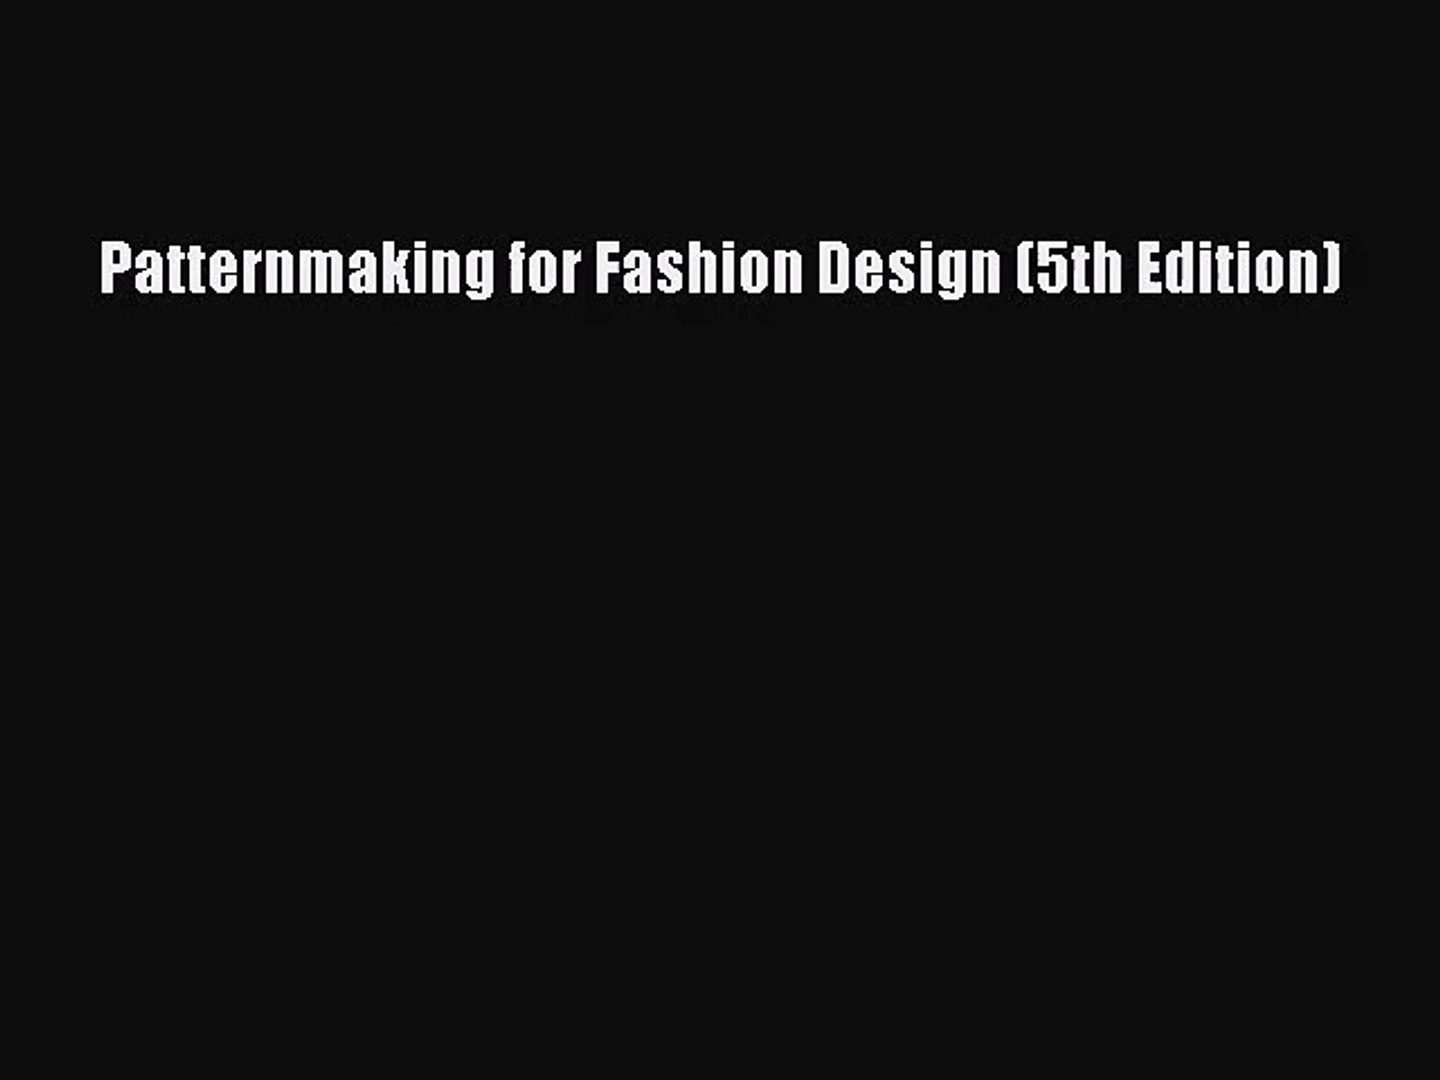 Pdf Download Patternmaking For Fashion Design 5th Edition Pdf Full Ebook Video Dailymotion